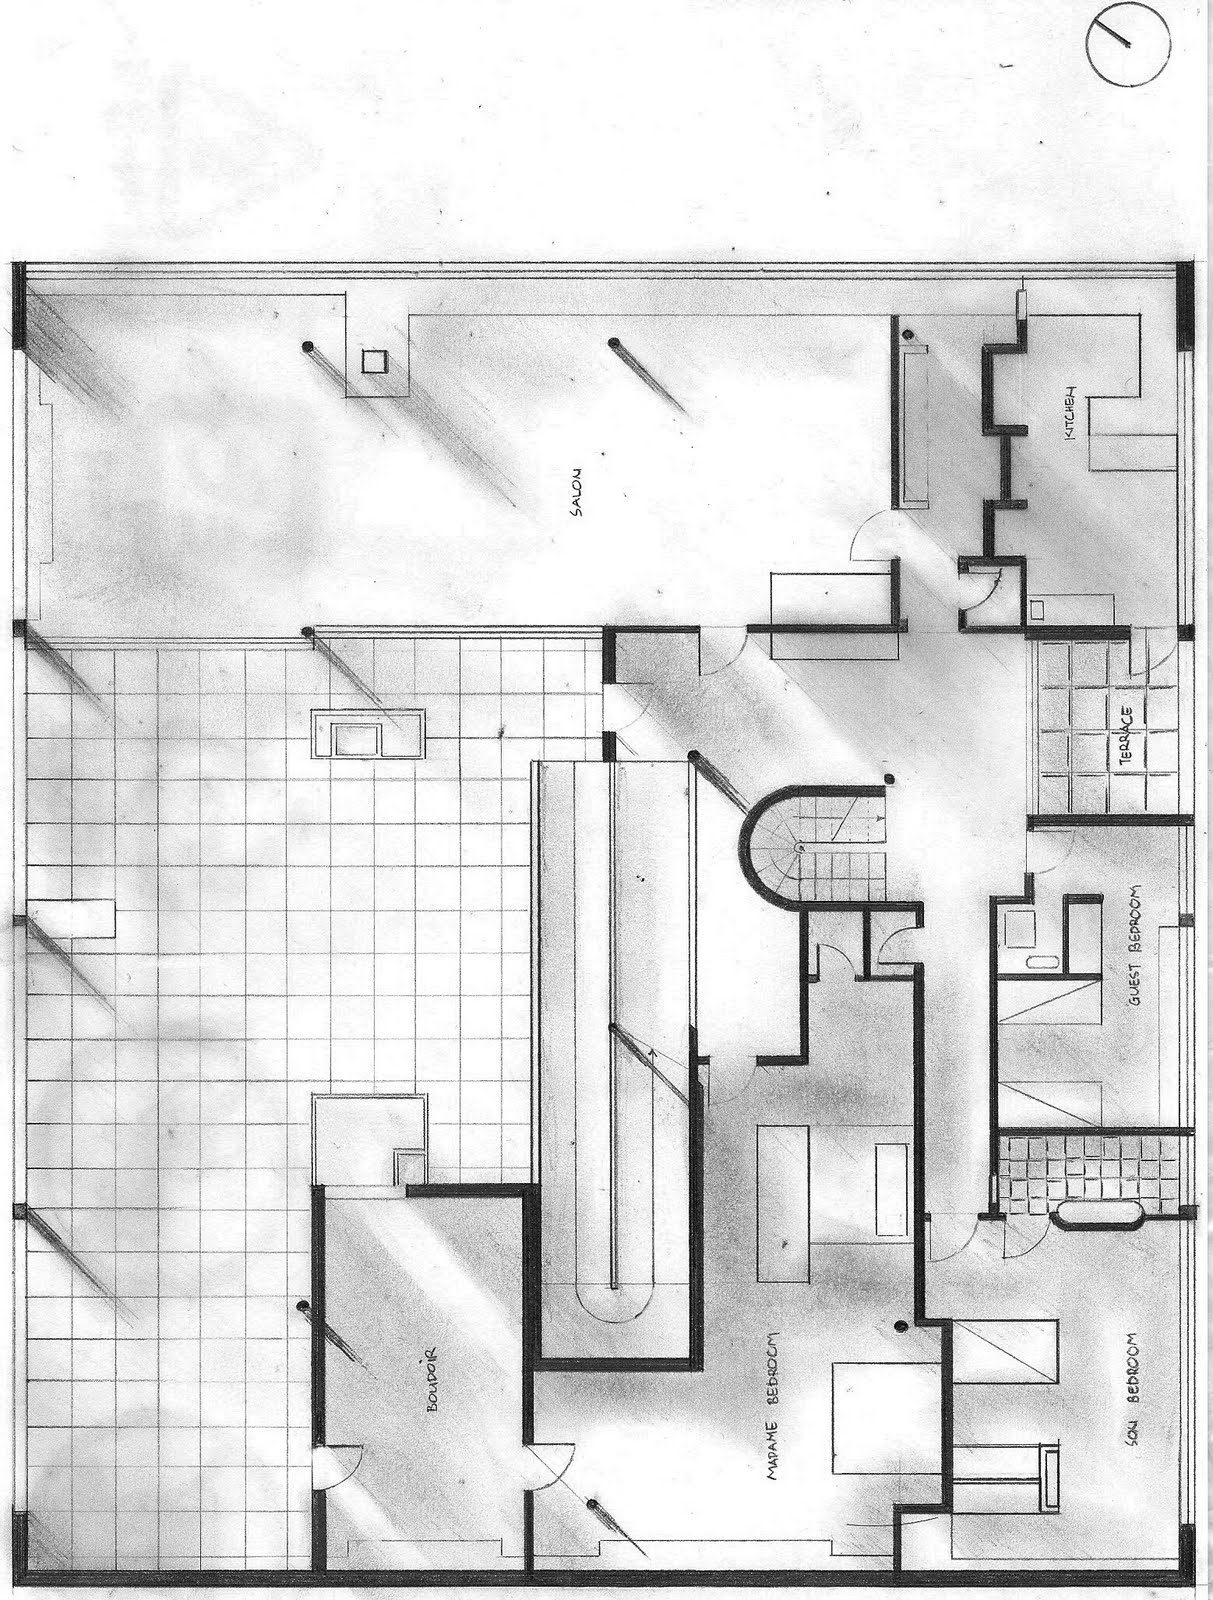 Ryan 39 s blog le corbusier 39 s villa savoye parti and poche for Free plan drawing